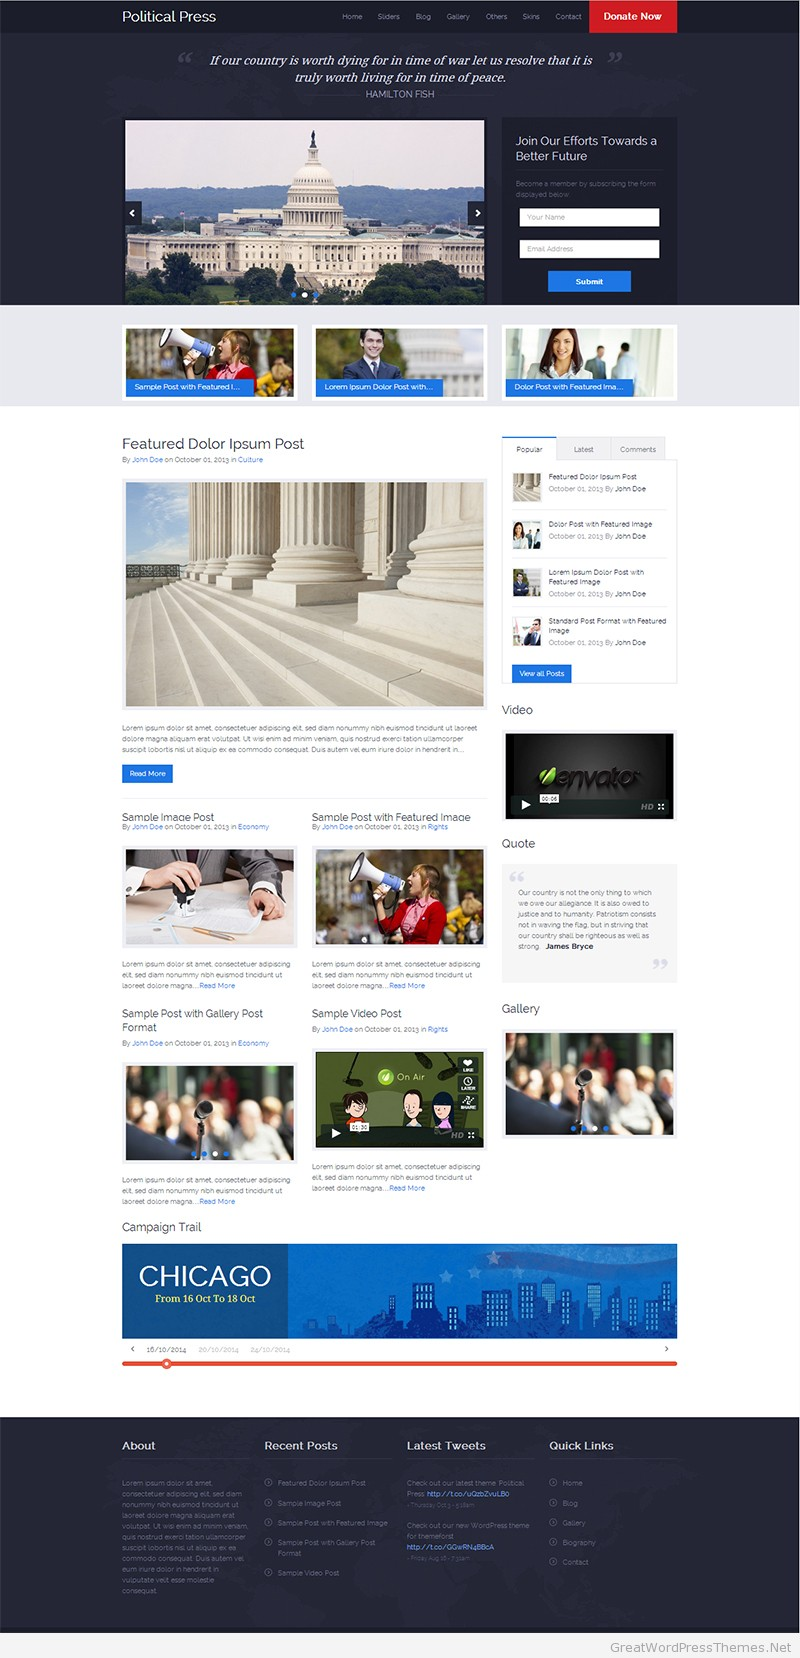 Political_Press_homepage